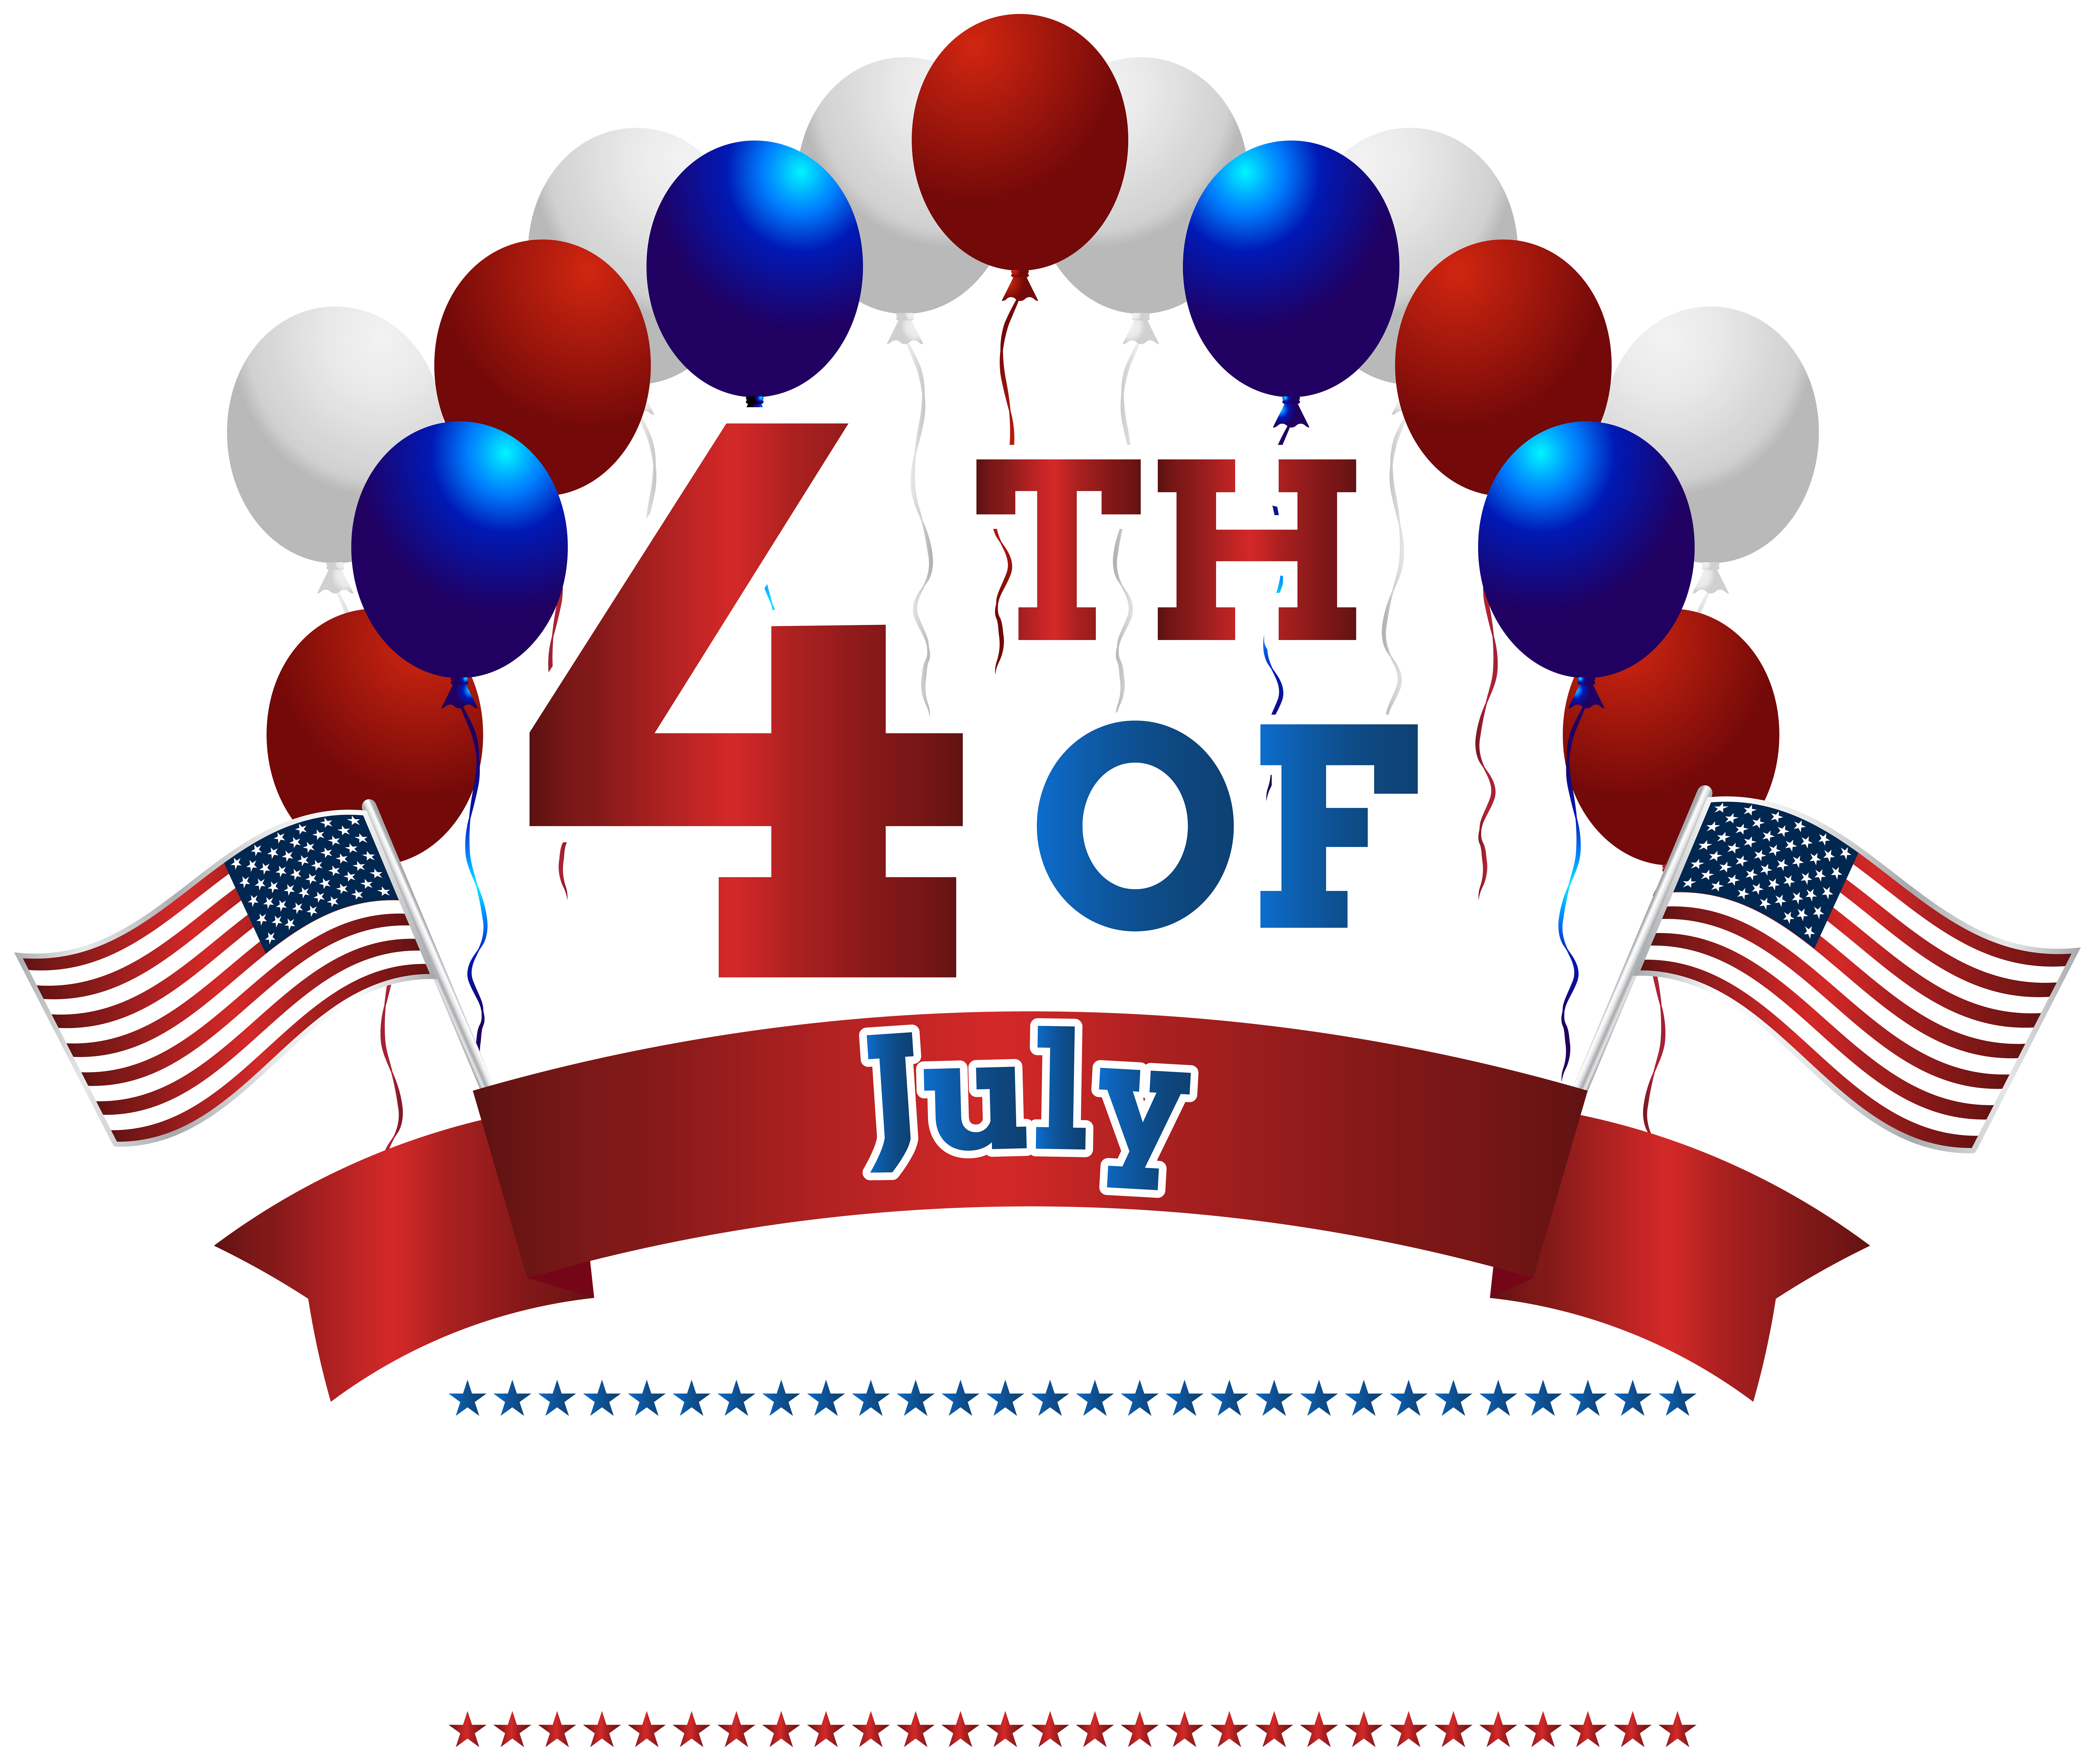 United States Independence Day Clip art.